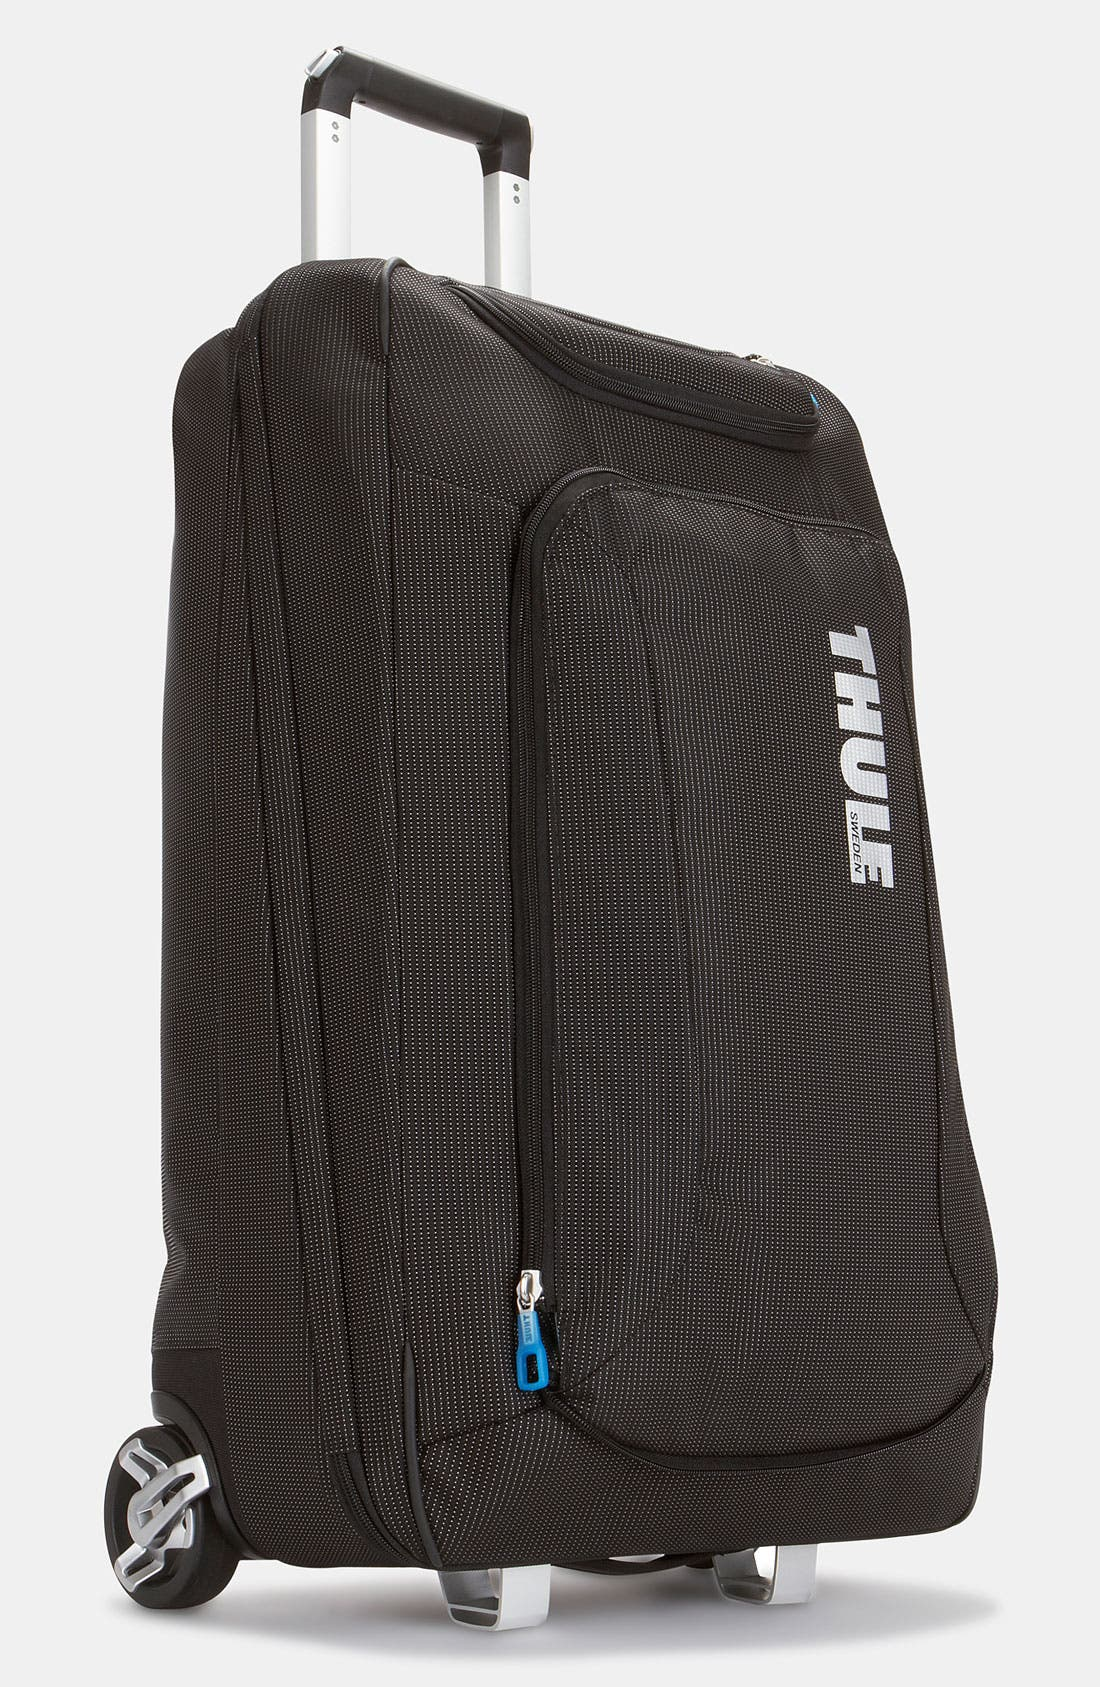 Main Image - Thule 'Crossover' Upright Rolling Bag (27 Inch)